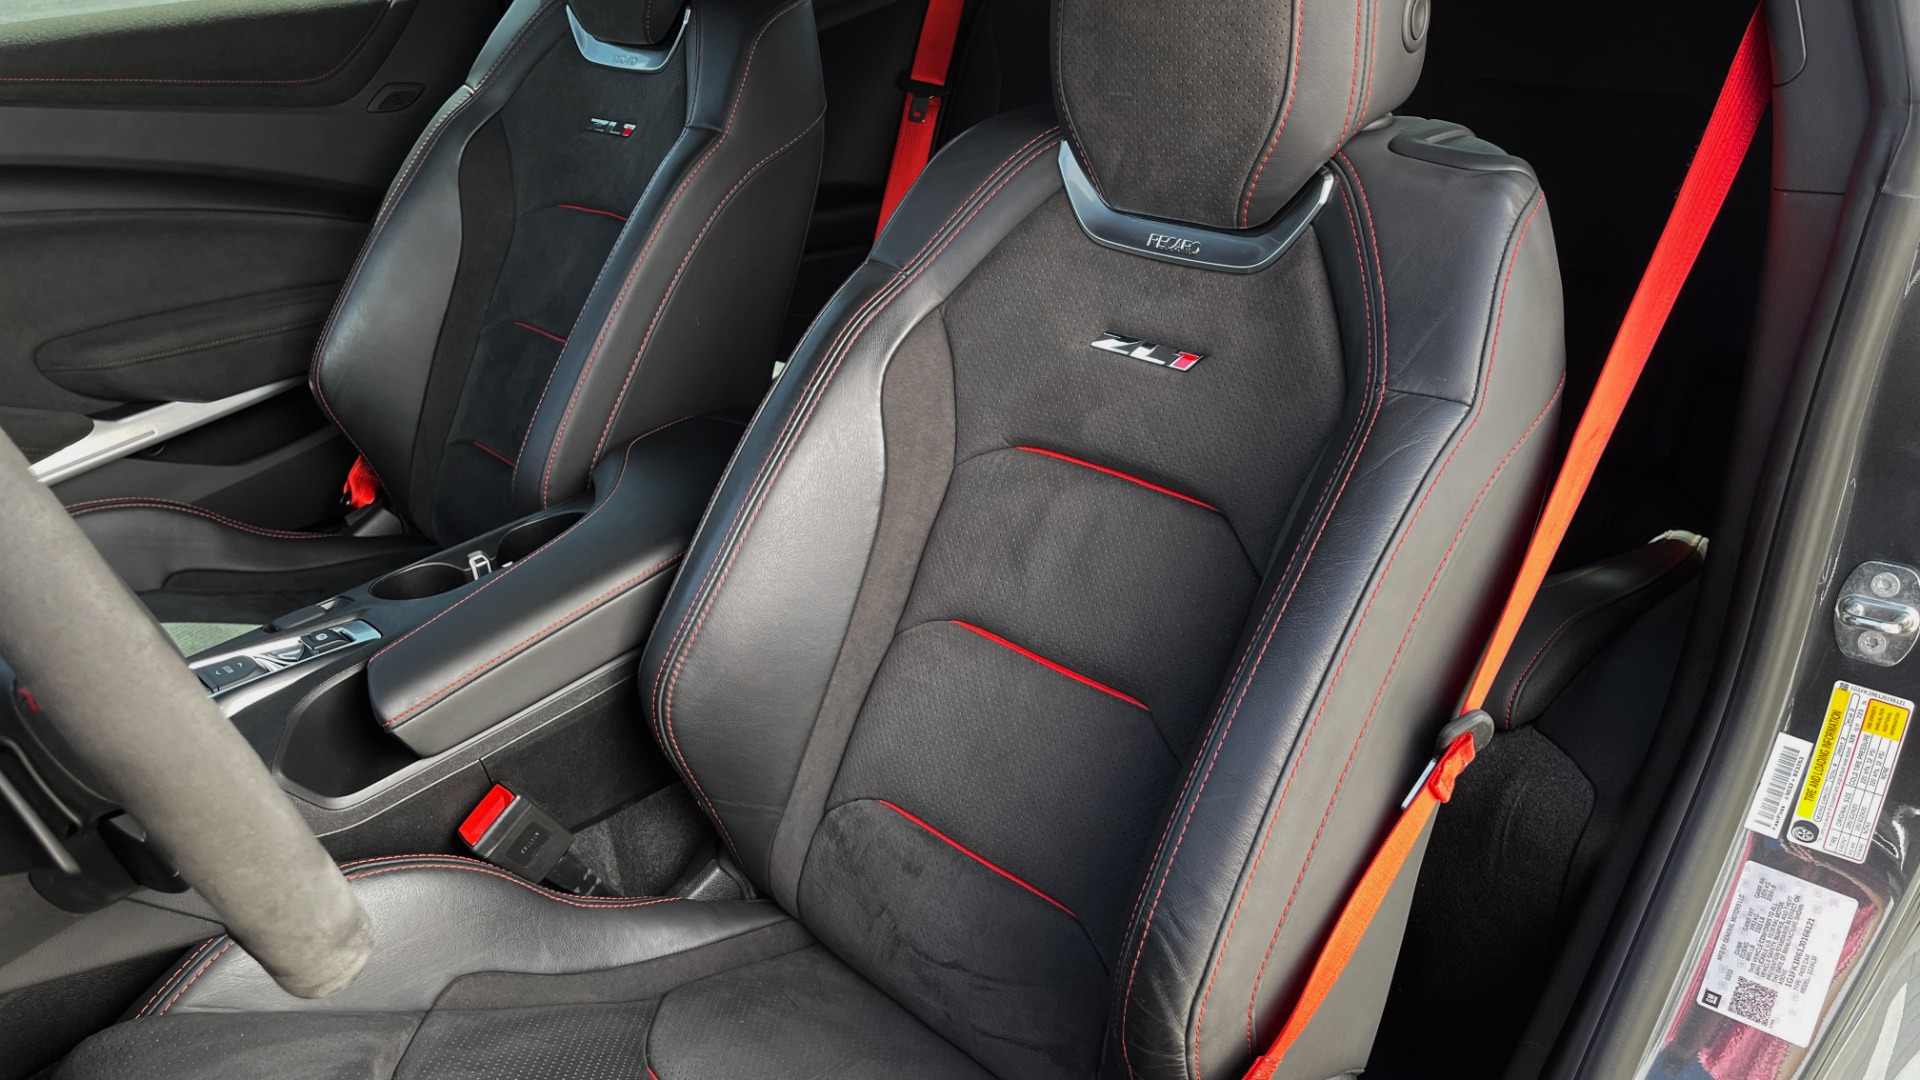 Used 2018 Chevrolet CAMARO ZL1 SUPERCHARGED COUPE 850HP / 10-SPD AUTO / NAV / BOSE / REARVIEW for sale $59,995 at Formula Imports in Charlotte NC 28227 32